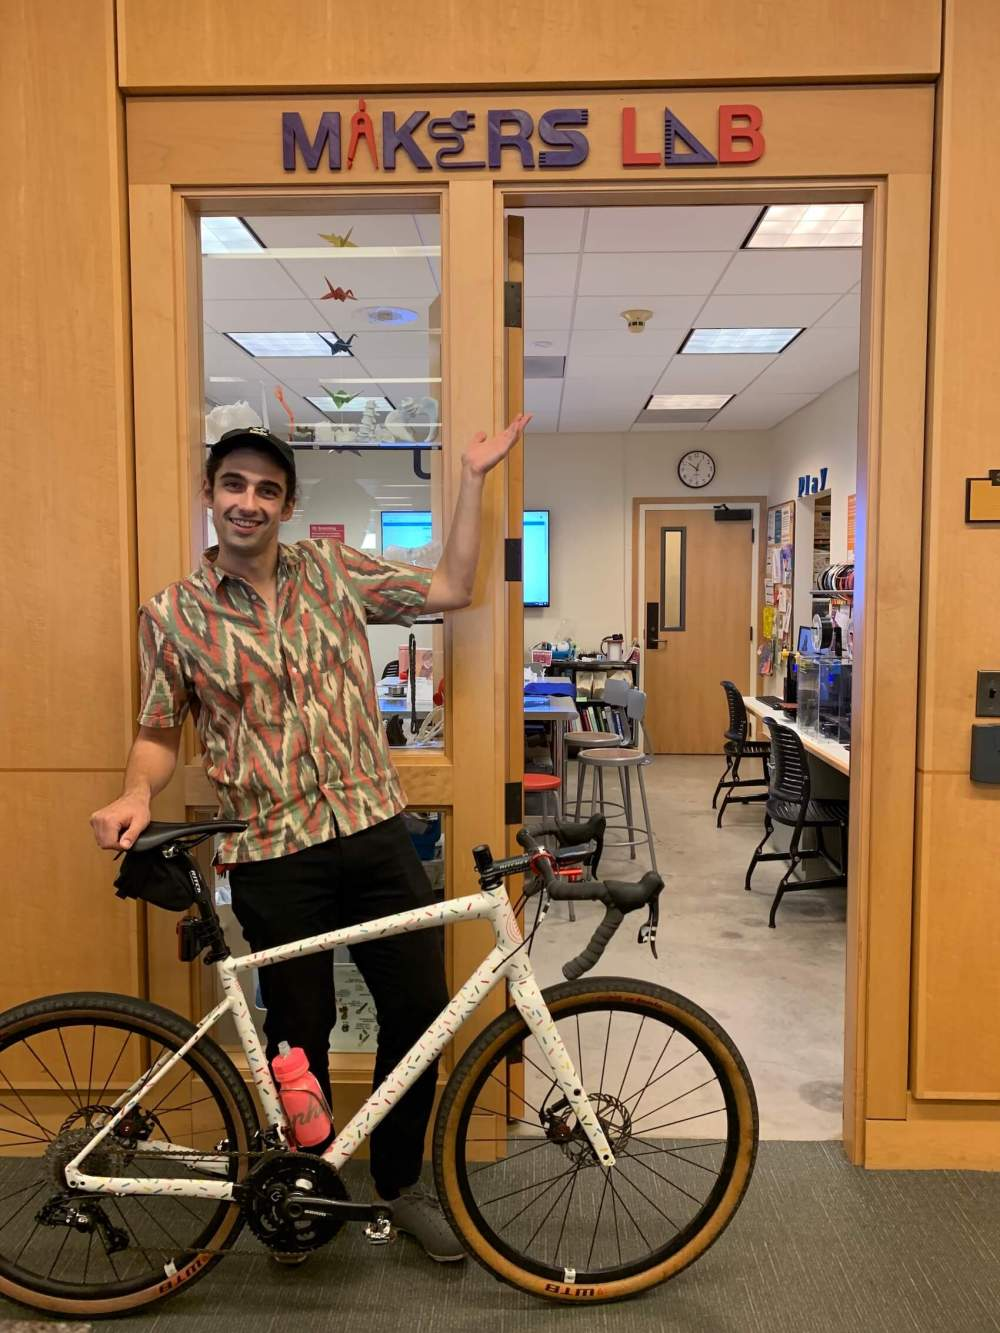 Angelo with bike outside of Makers Lab